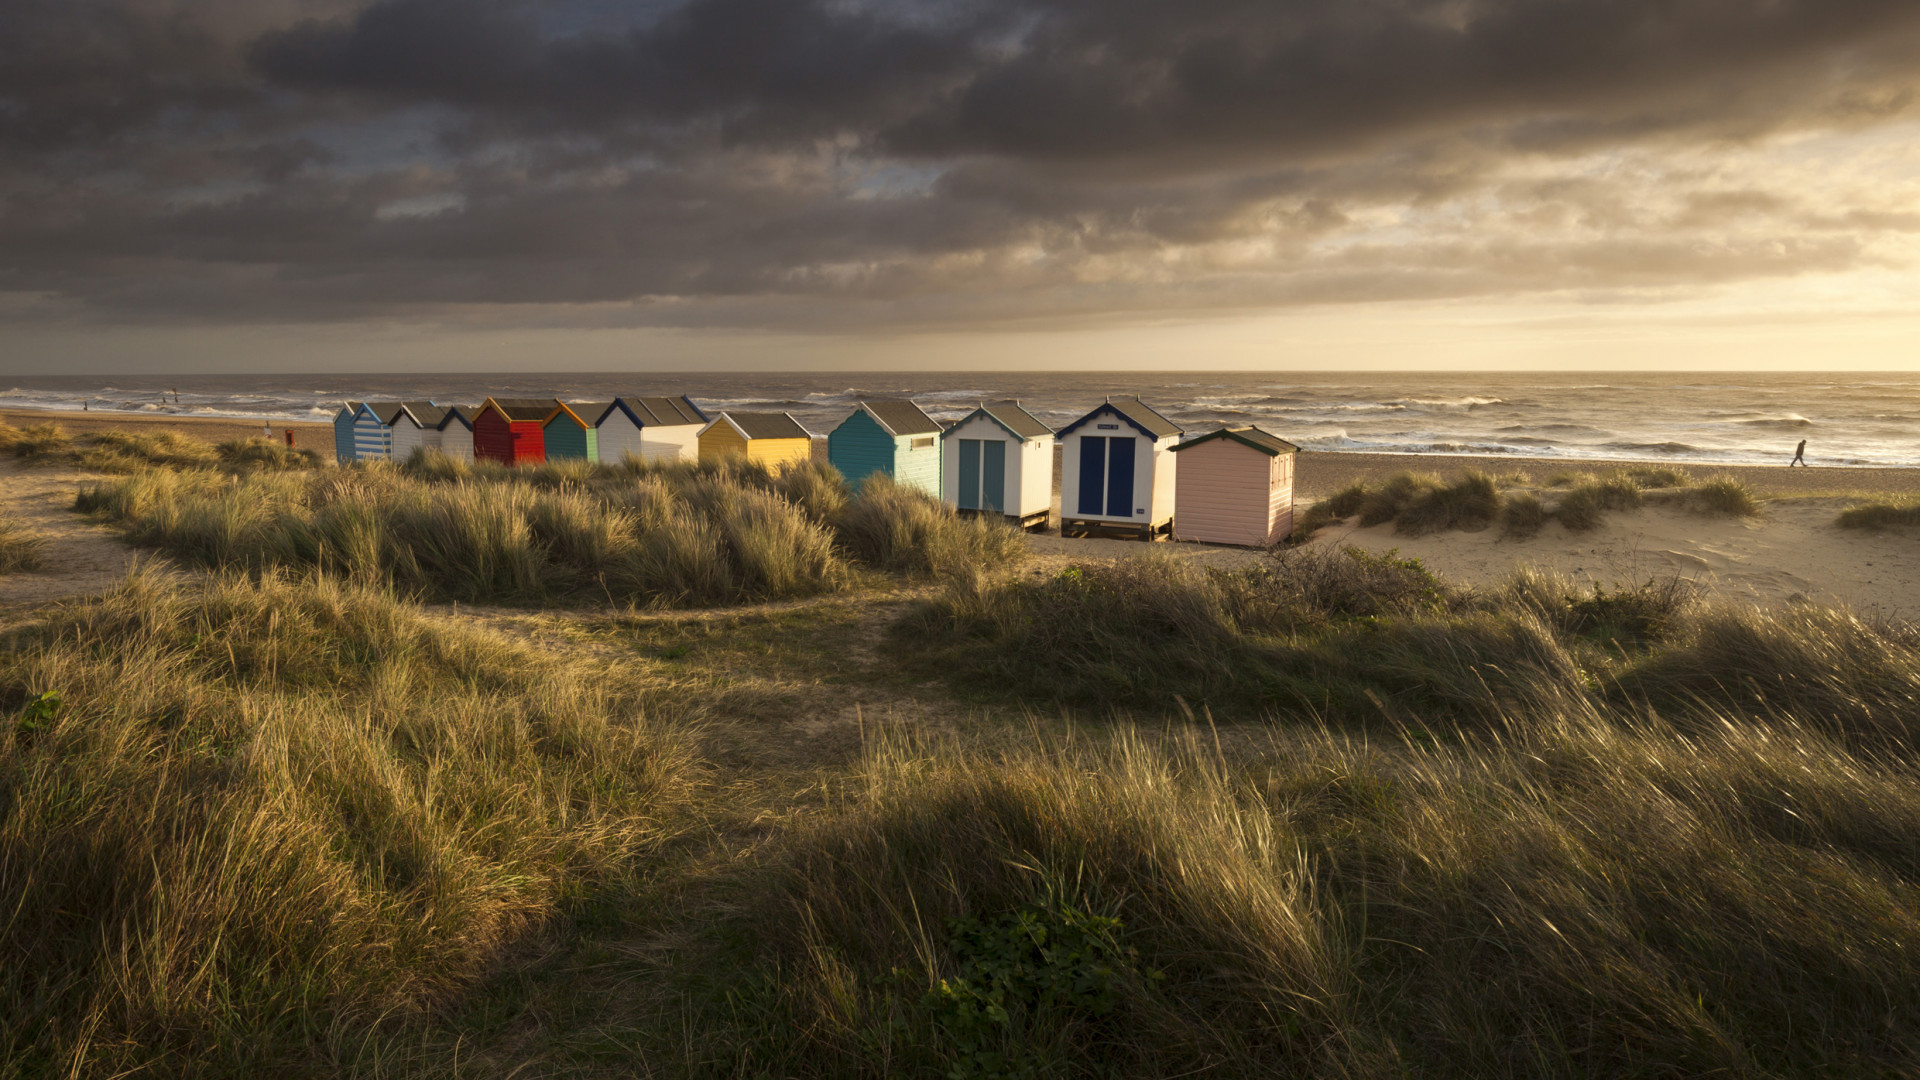 Colourful beach huts on the seafront at Southwold